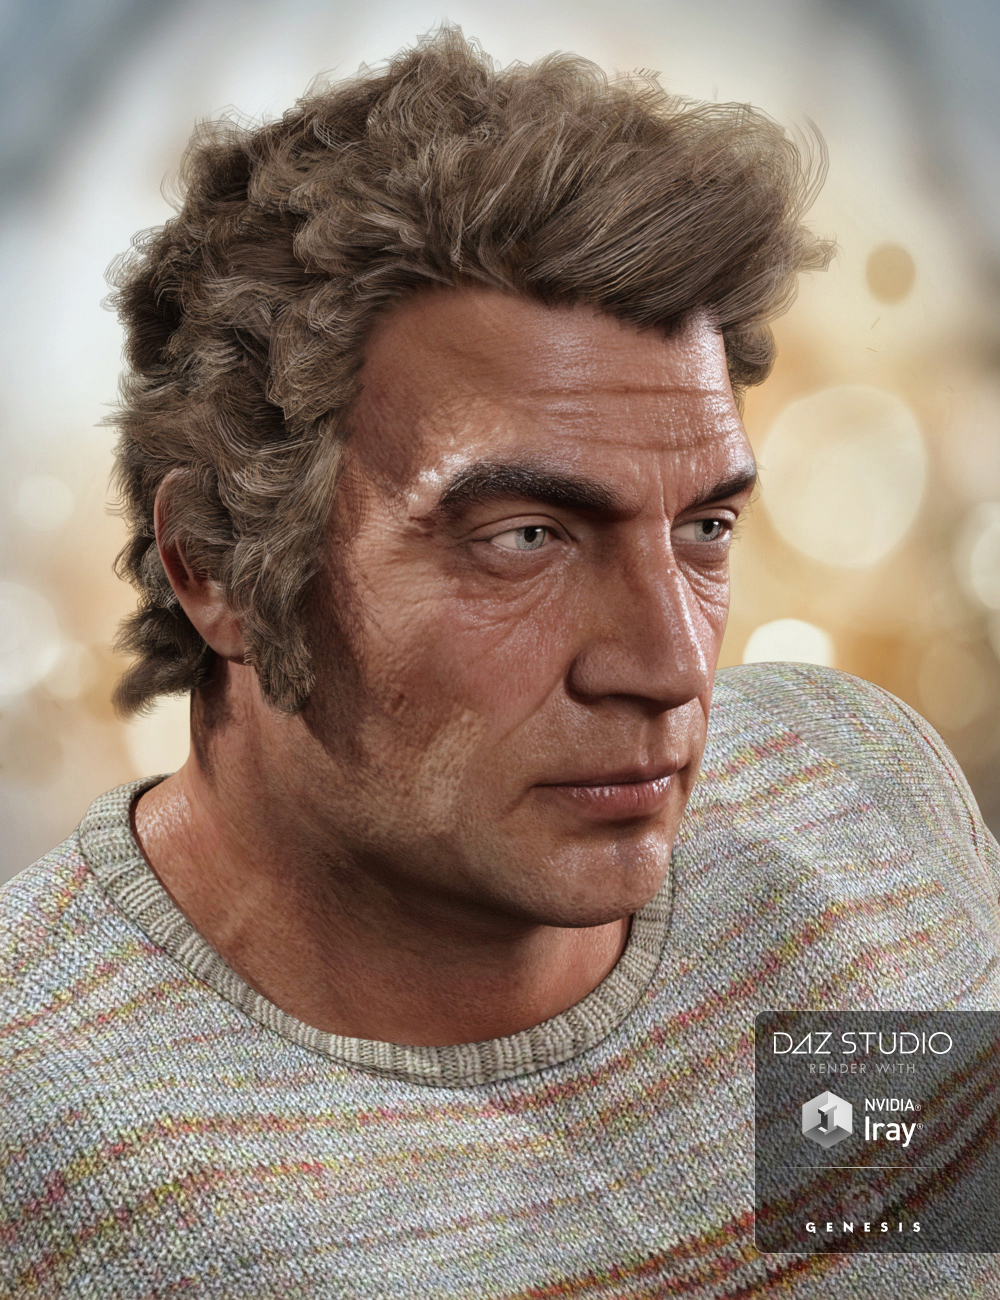 Thomas Hair for Genesis 3 Male(s) by: 3DCelebrity, 3D Models by Daz 3D